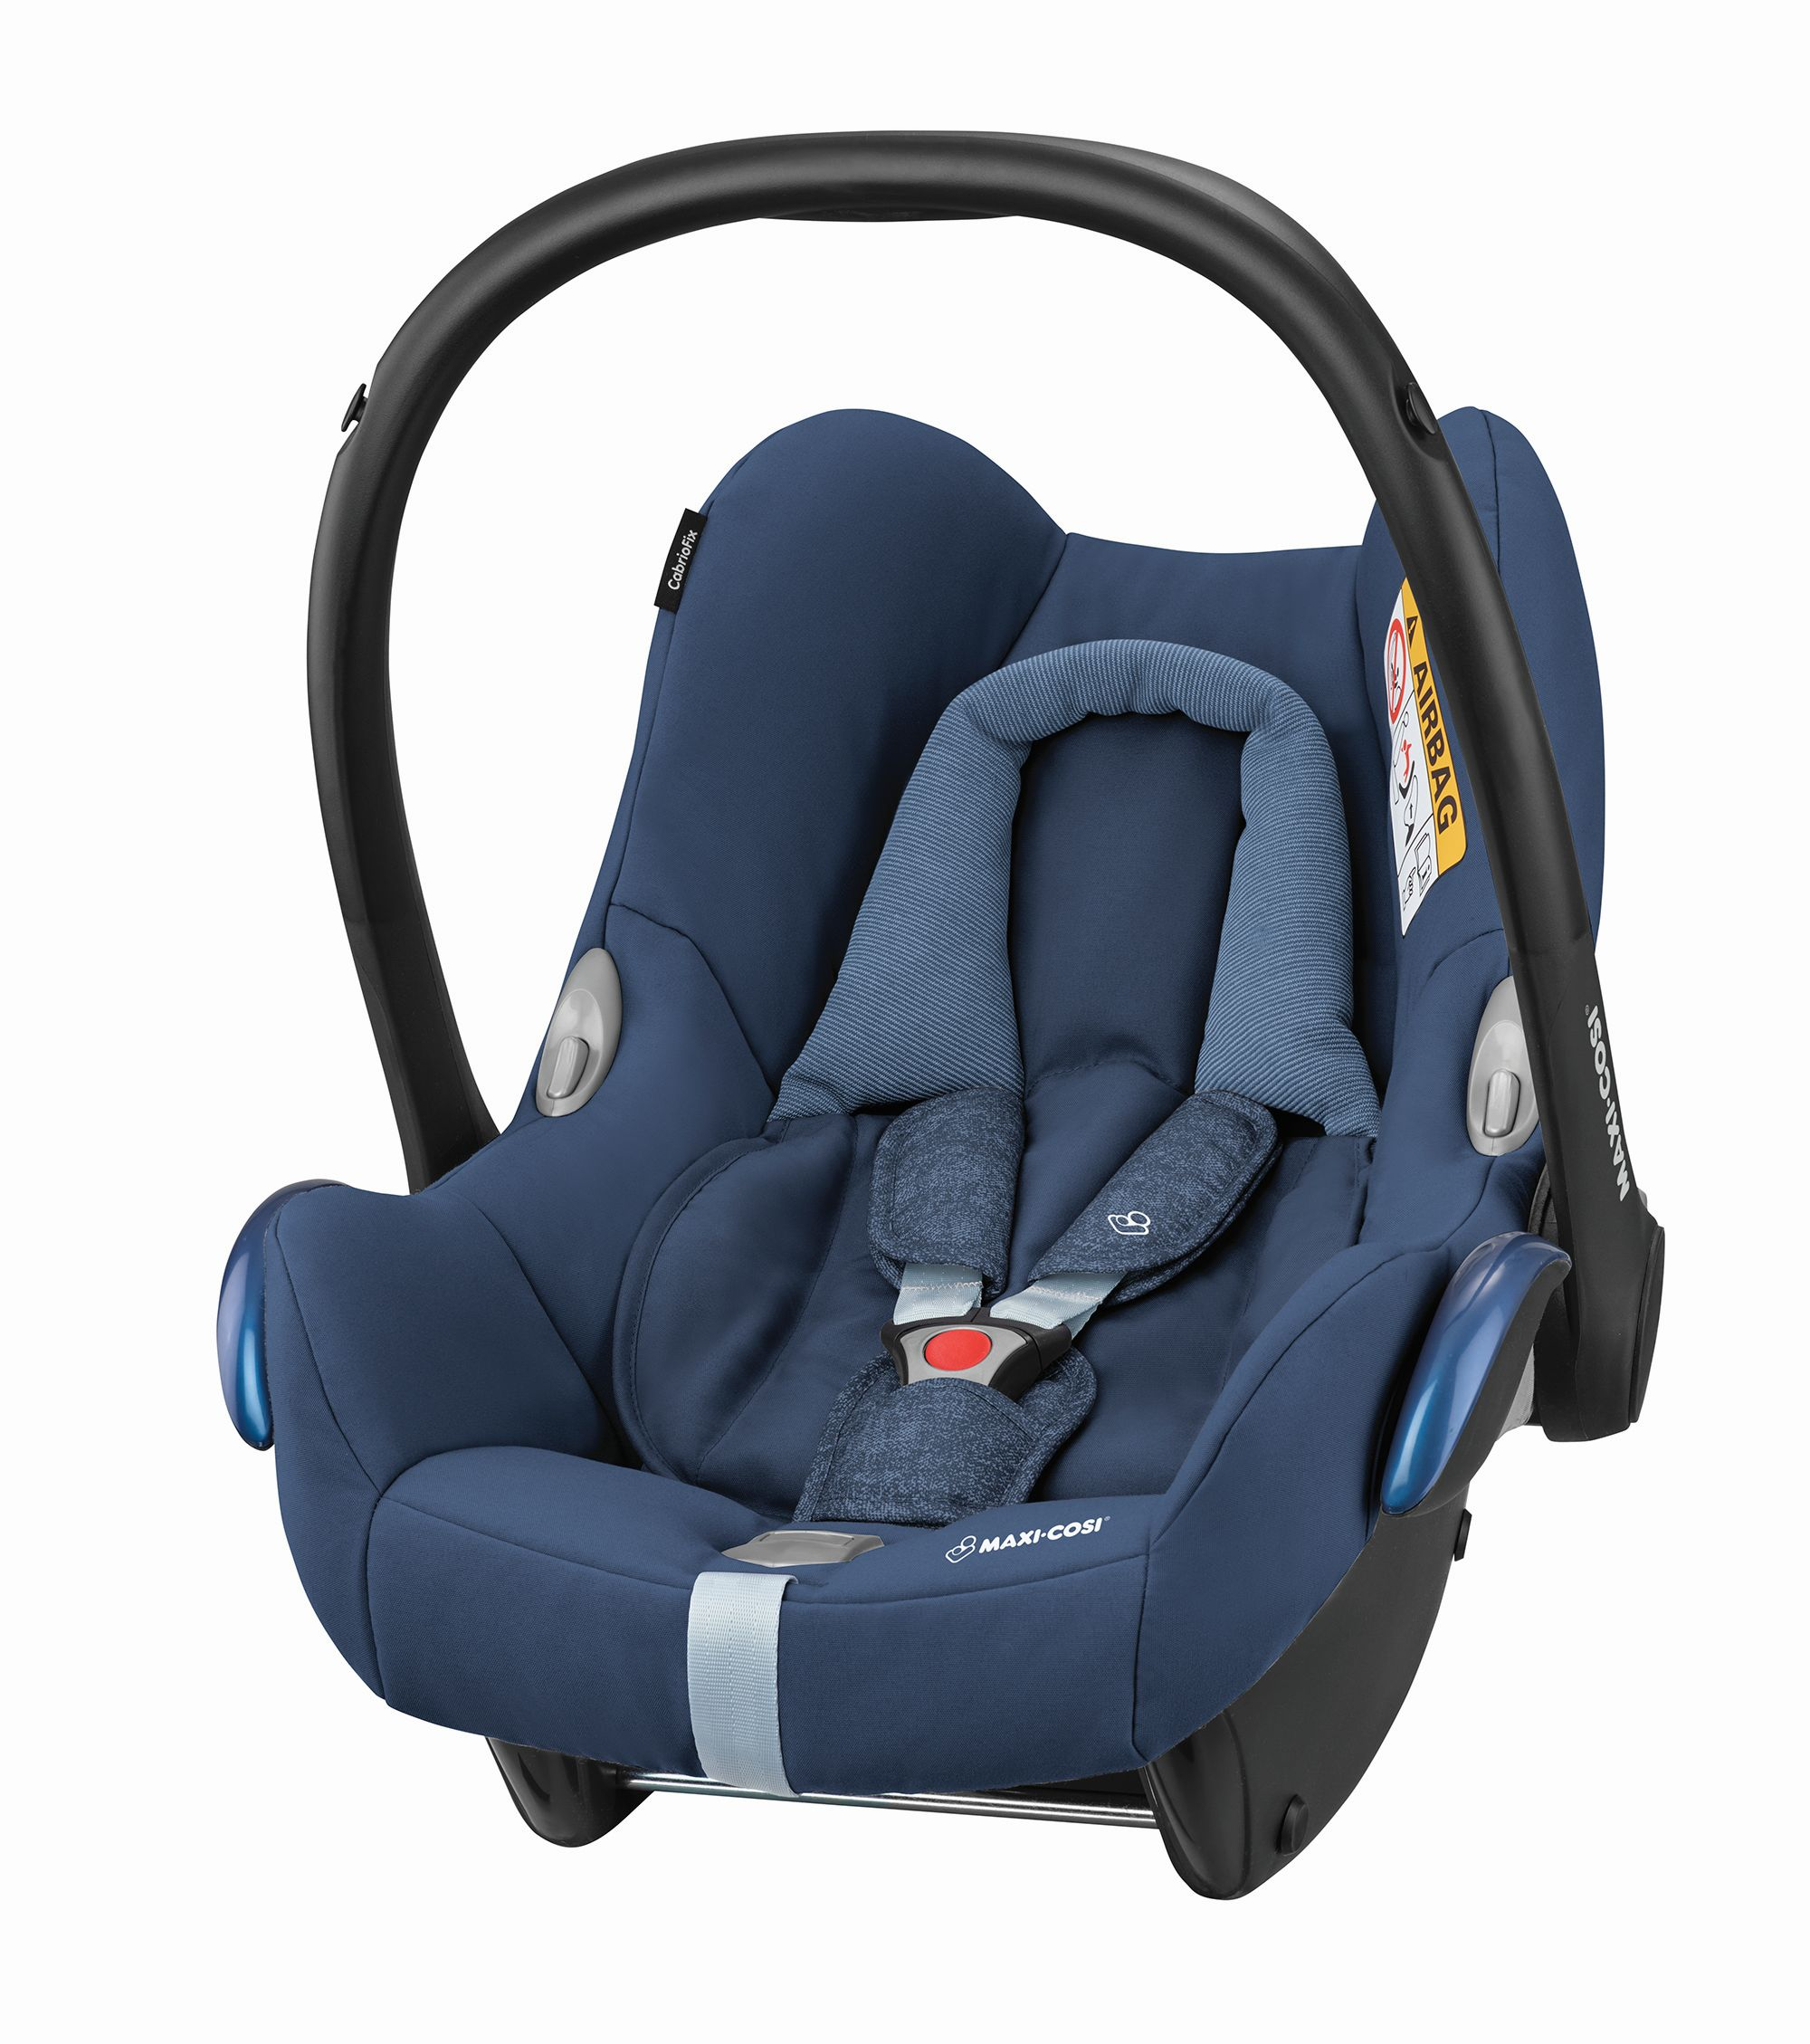 maxi cosi infant car seat cabriofix 2018 nomad blue buy at kidsroom car seats. Black Bedroom Furniture Sets. Home Design Ideas